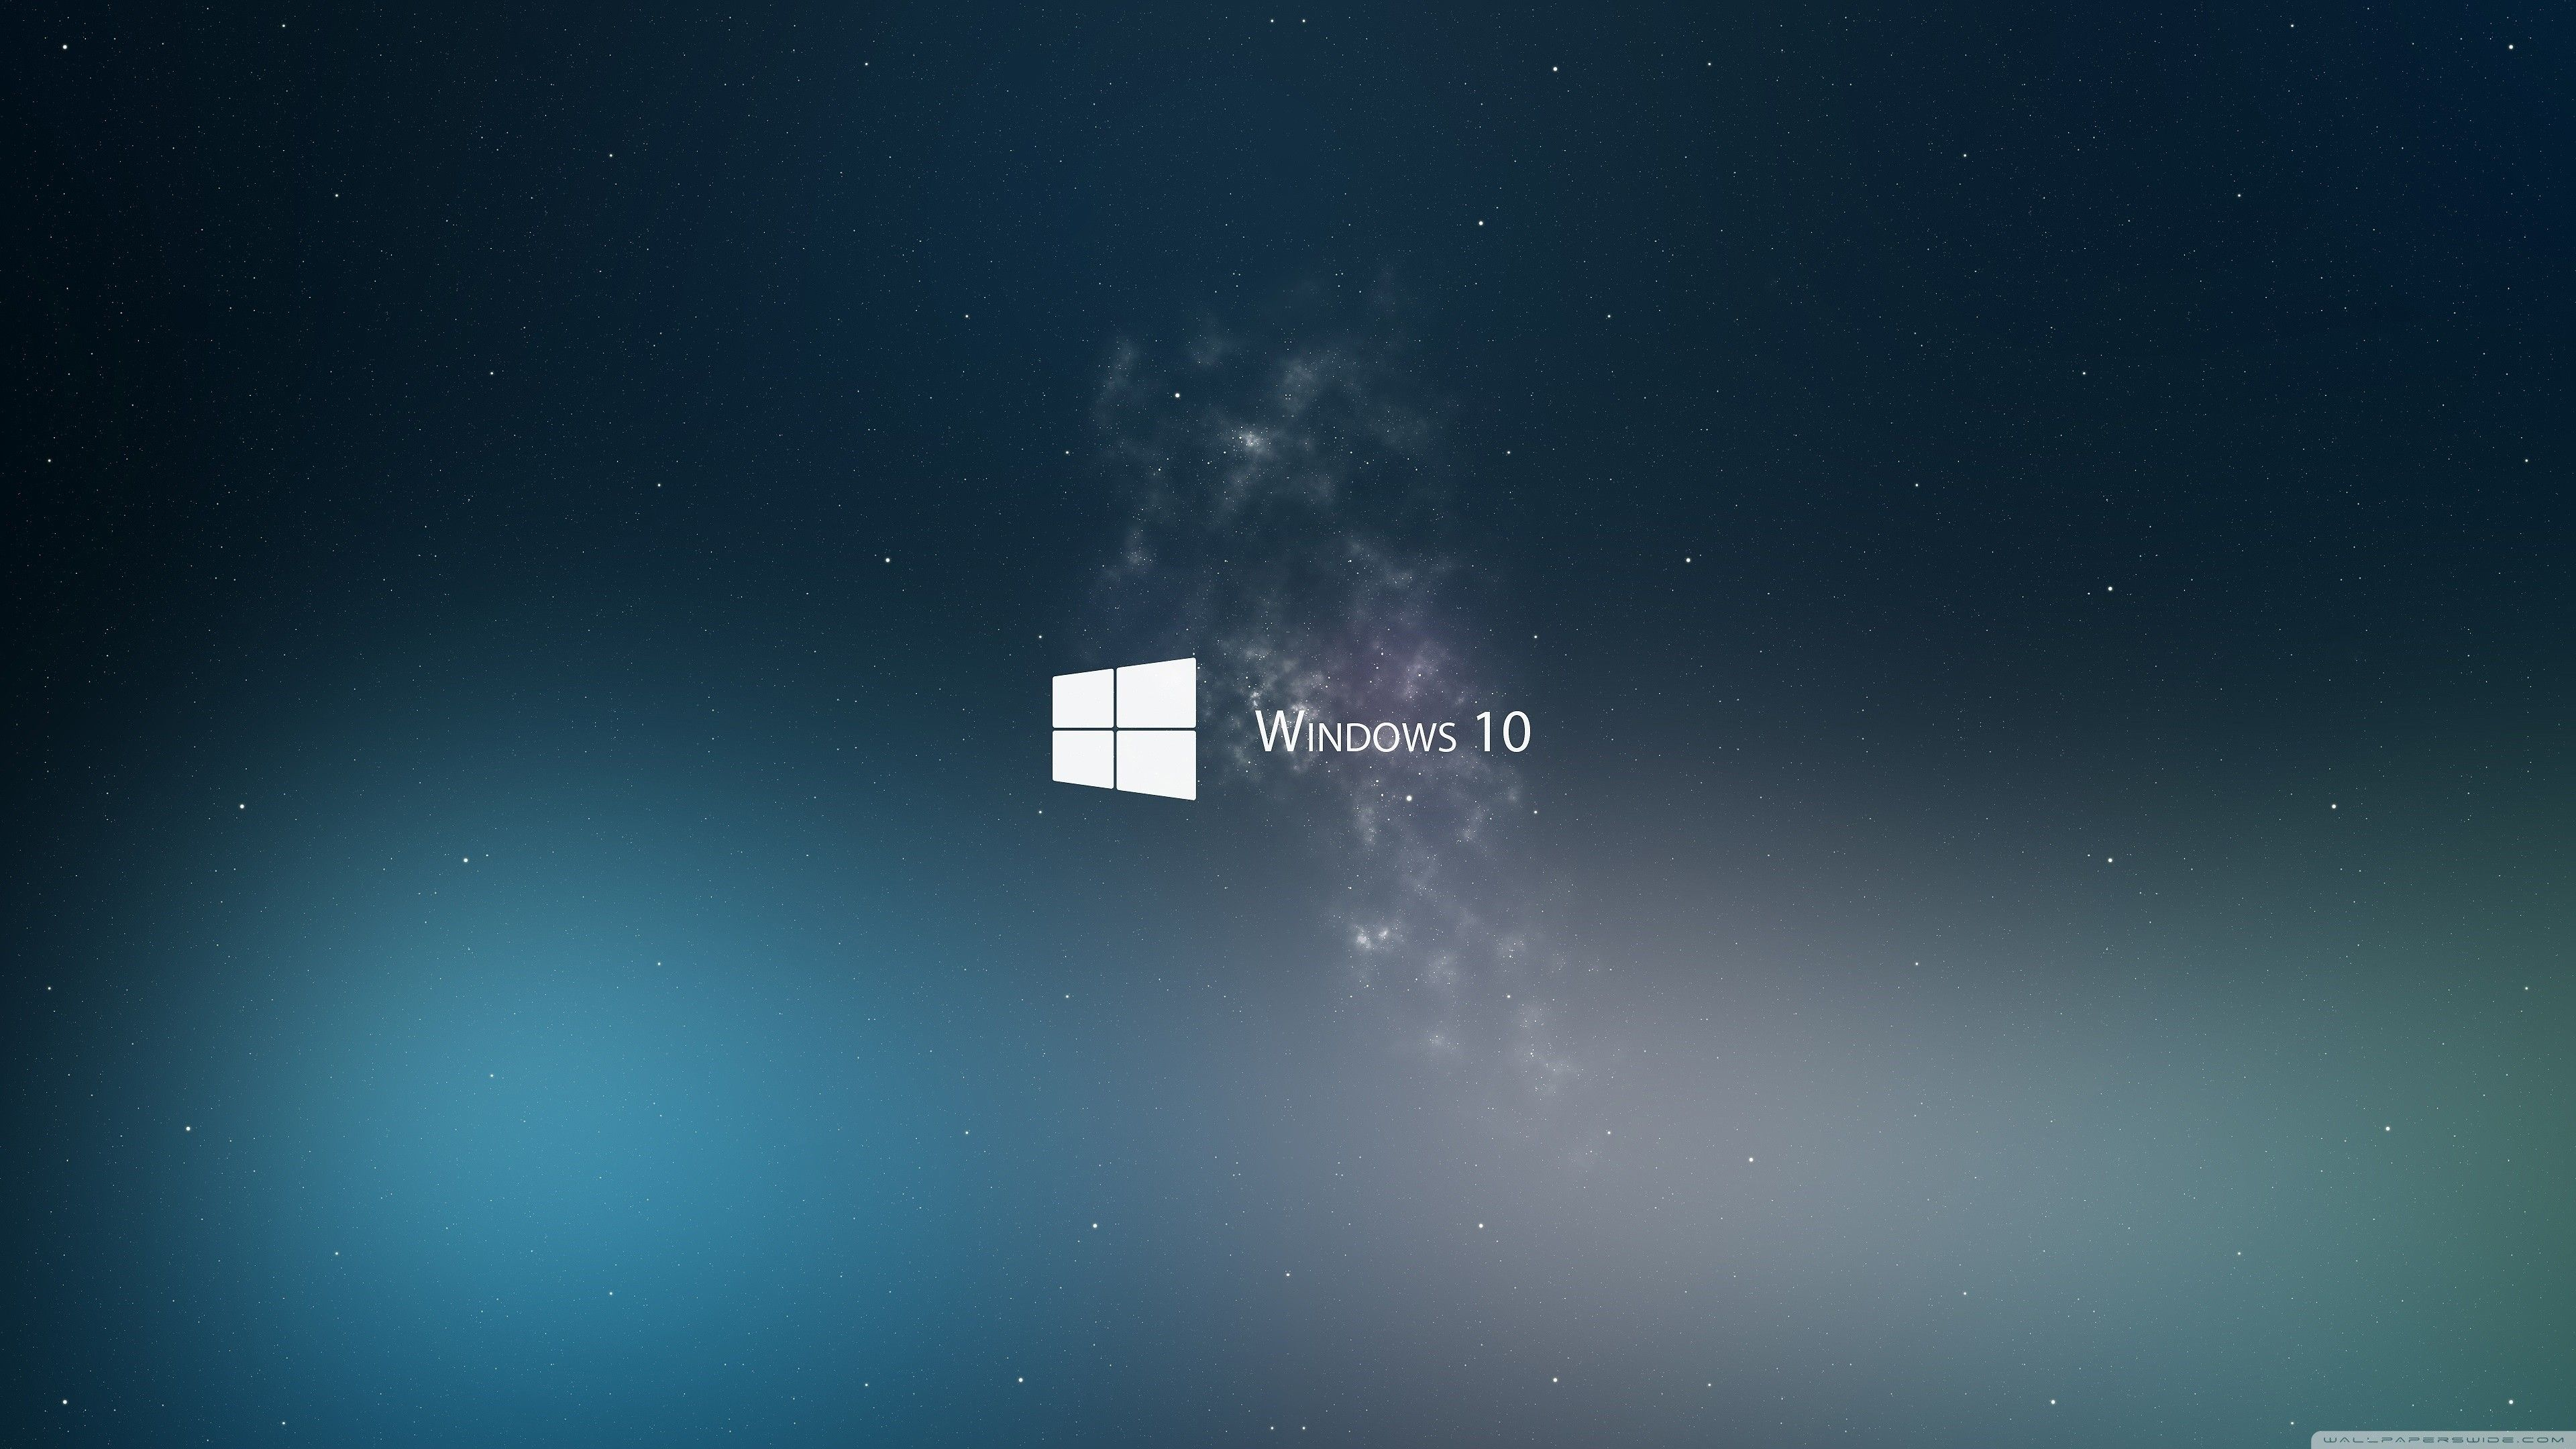 3840x2160 Windows 10 HD Wide Wallpaper for Widescreen